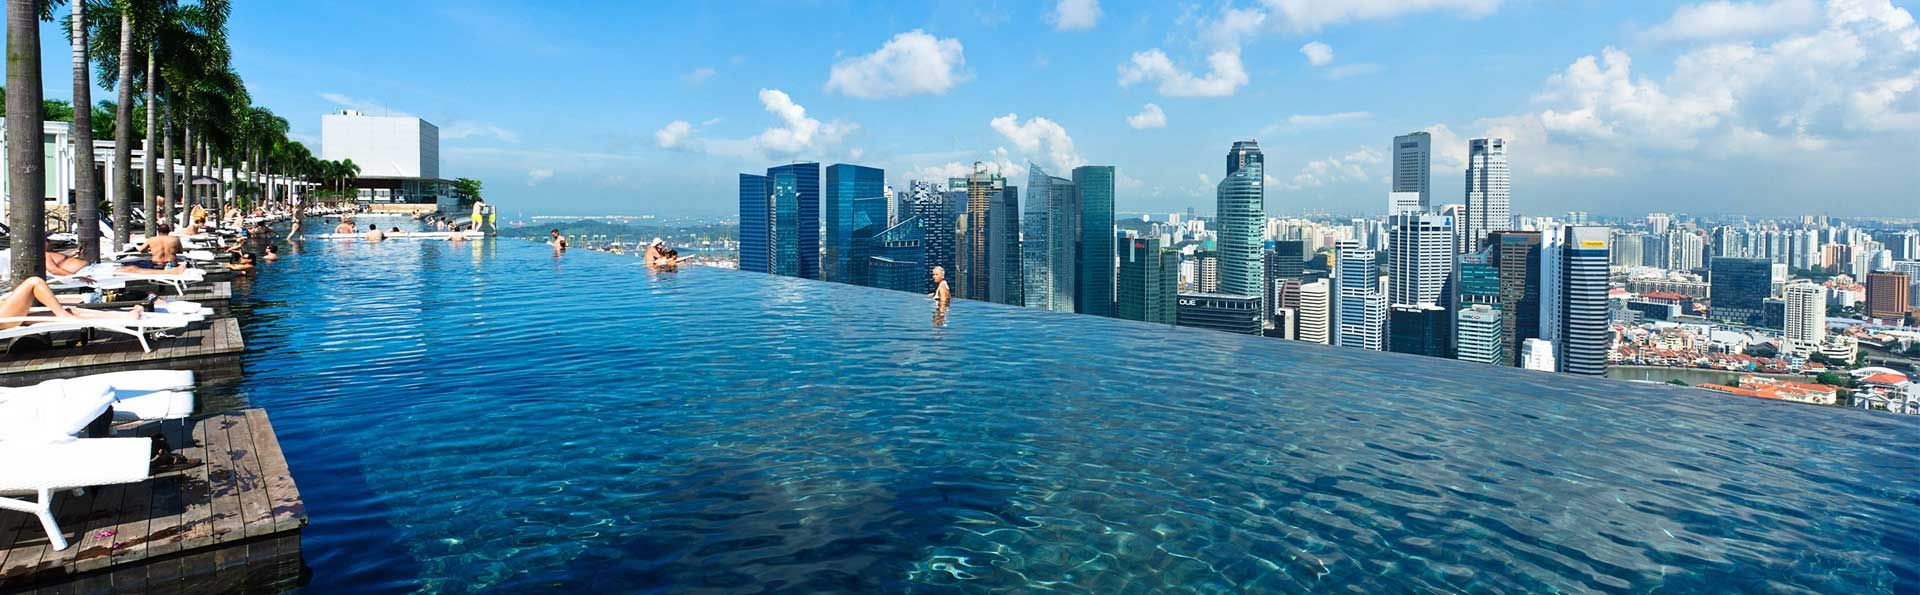 Marina bay sands hotel infinity pool with view of for Marinal piscine